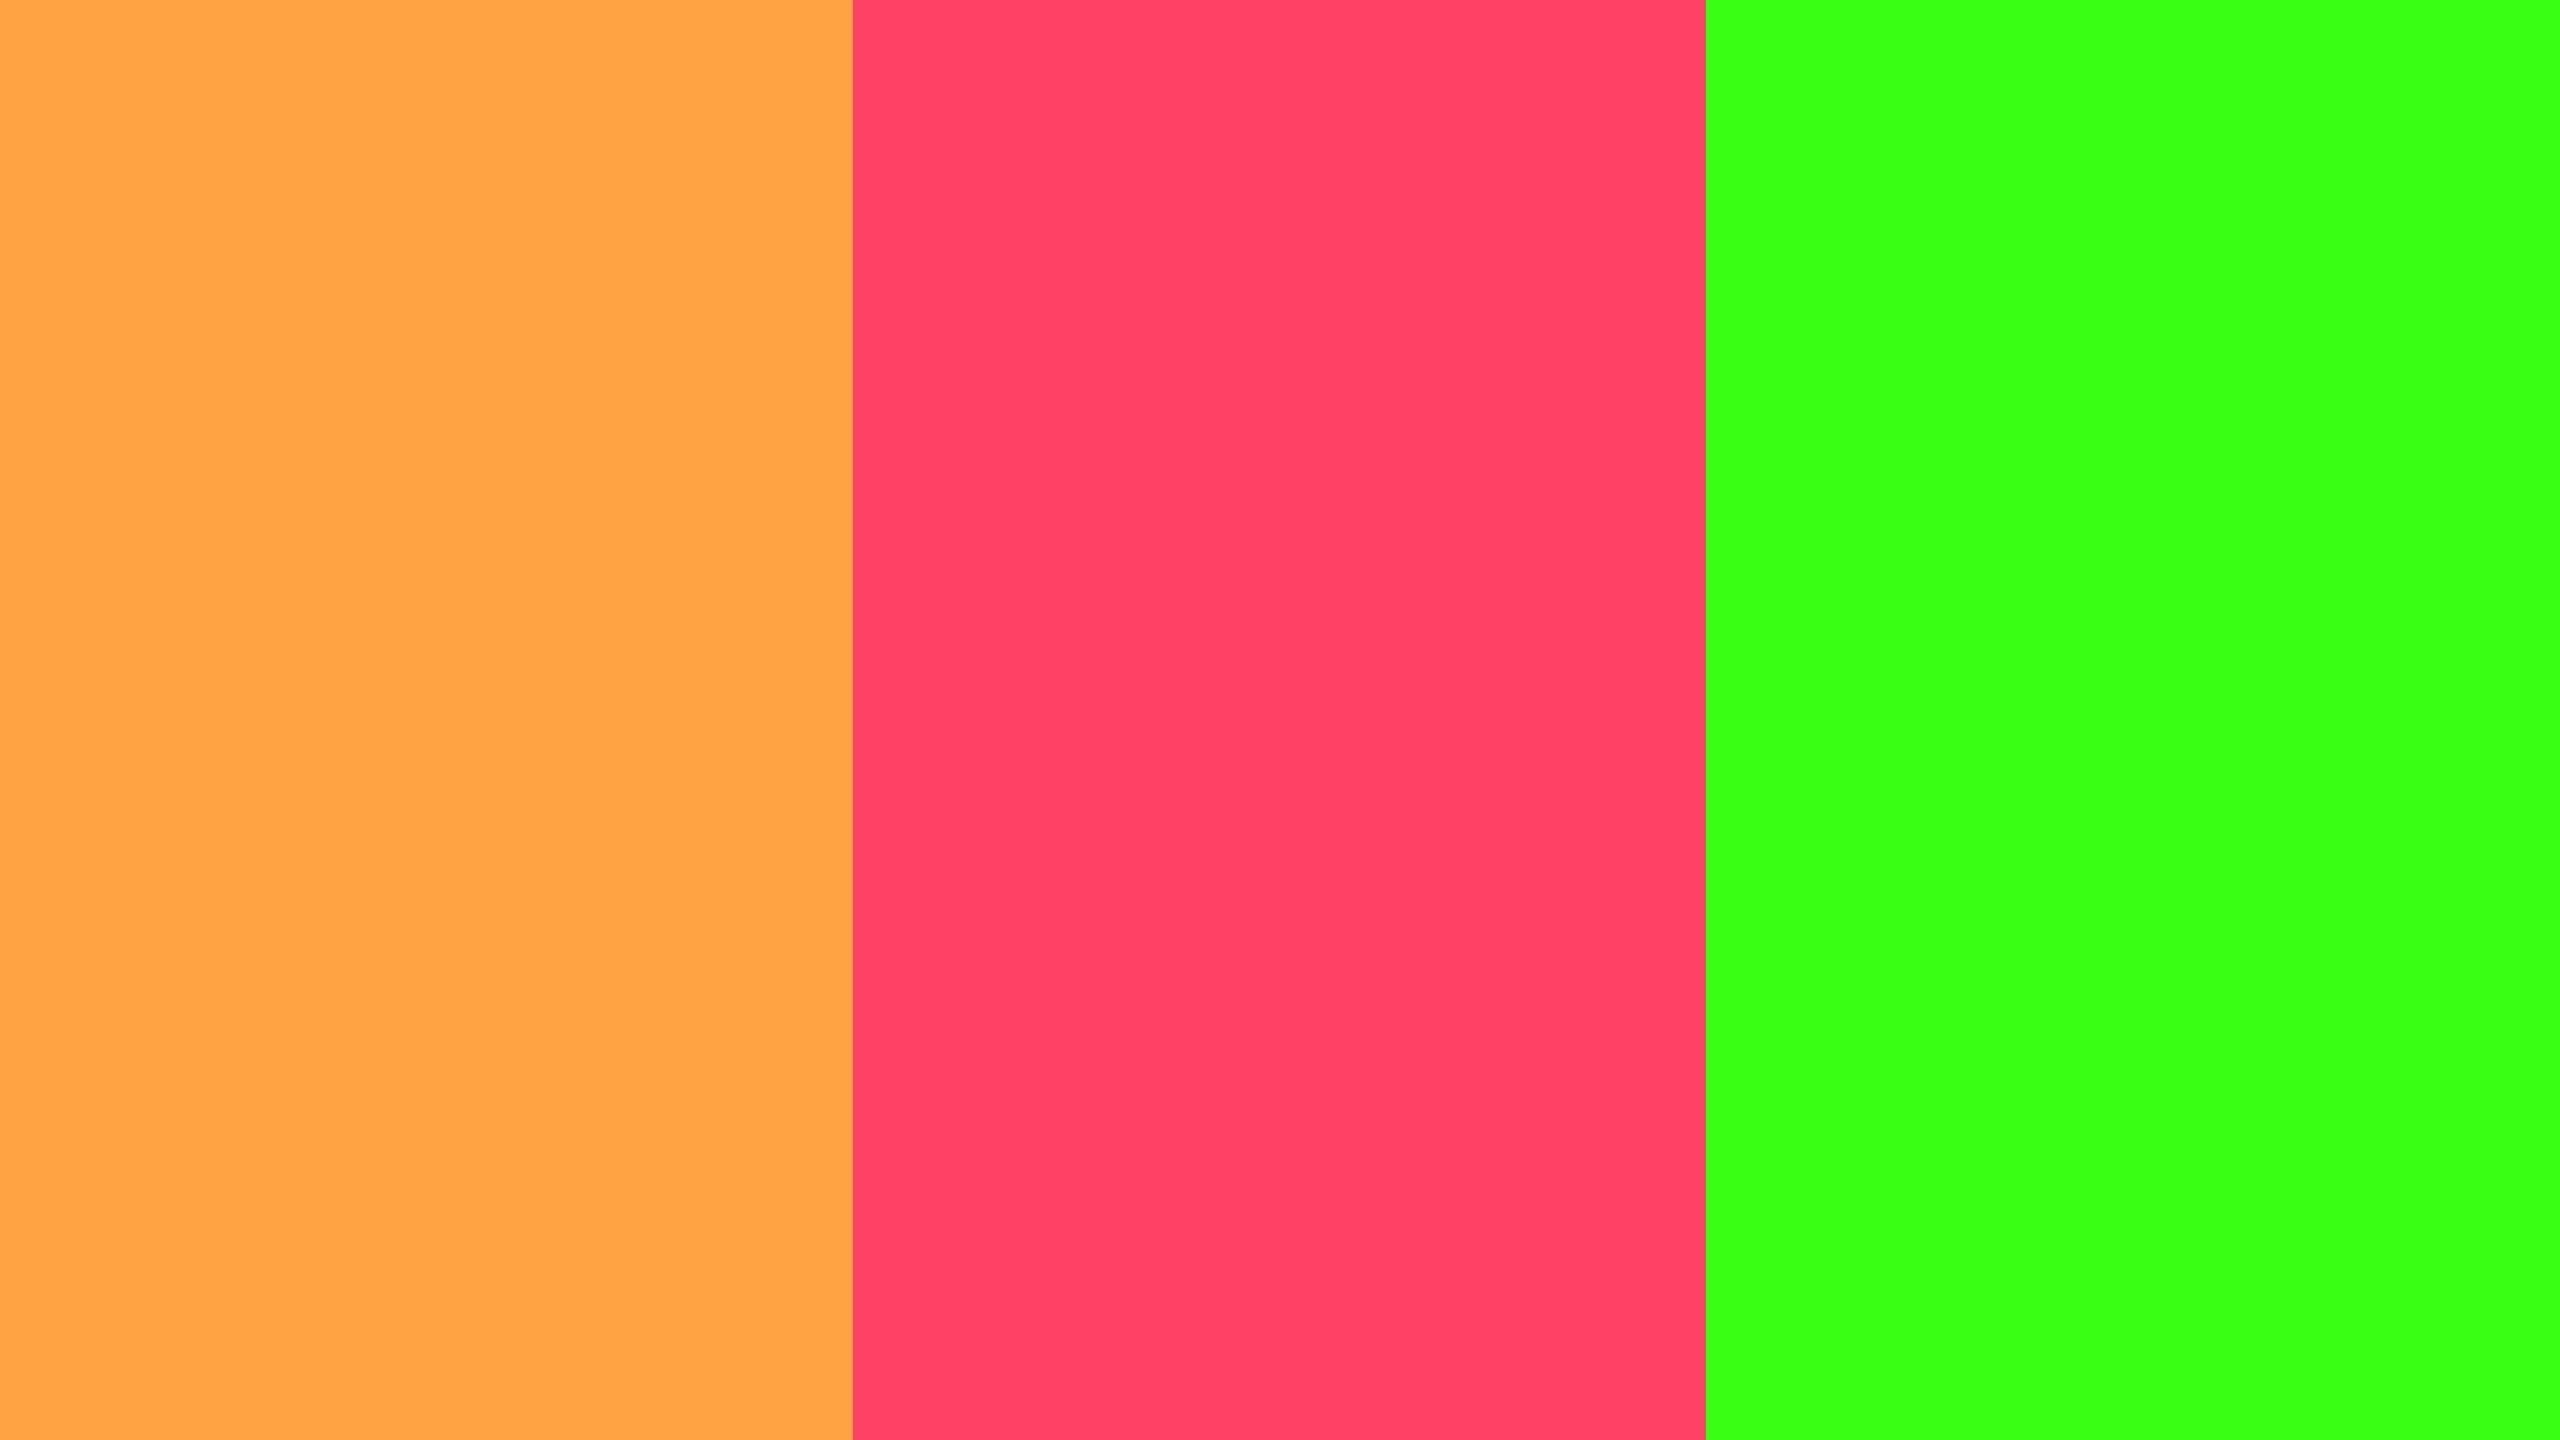 Solid Rainbow Color Wallpaper Source - Solid Neon Colored Background - HD Wallpaper